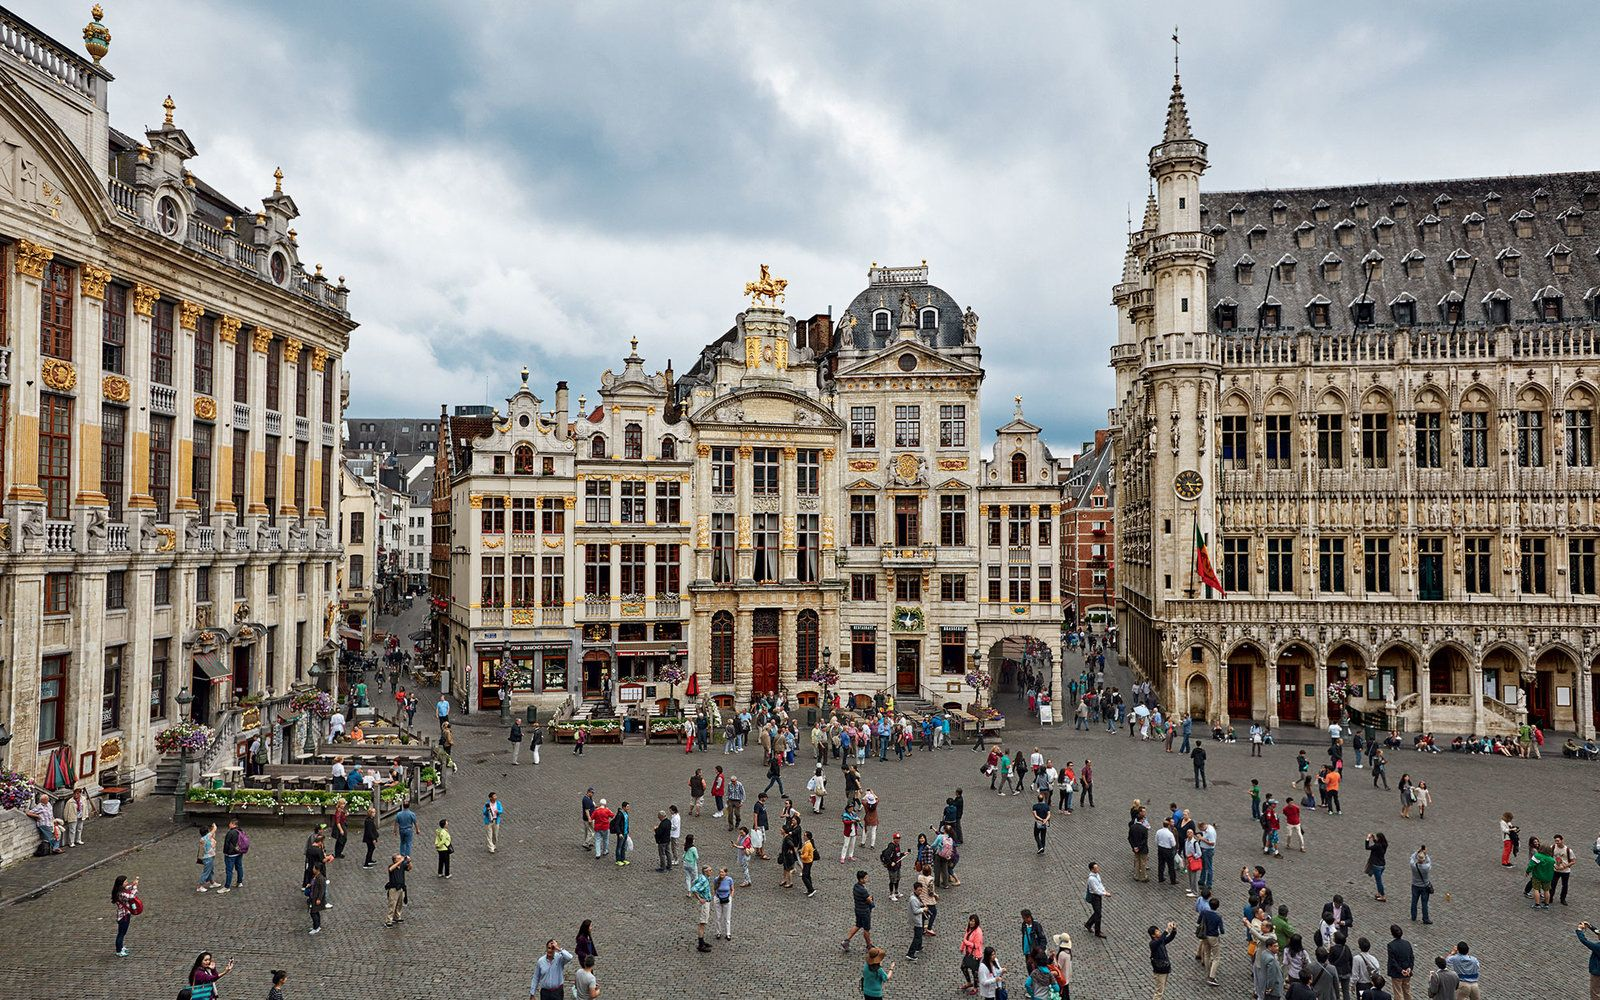 This week we couldn't help but say: Welcome to Brussels: Europe´s Art-World Hotspot via Travel + Leisure